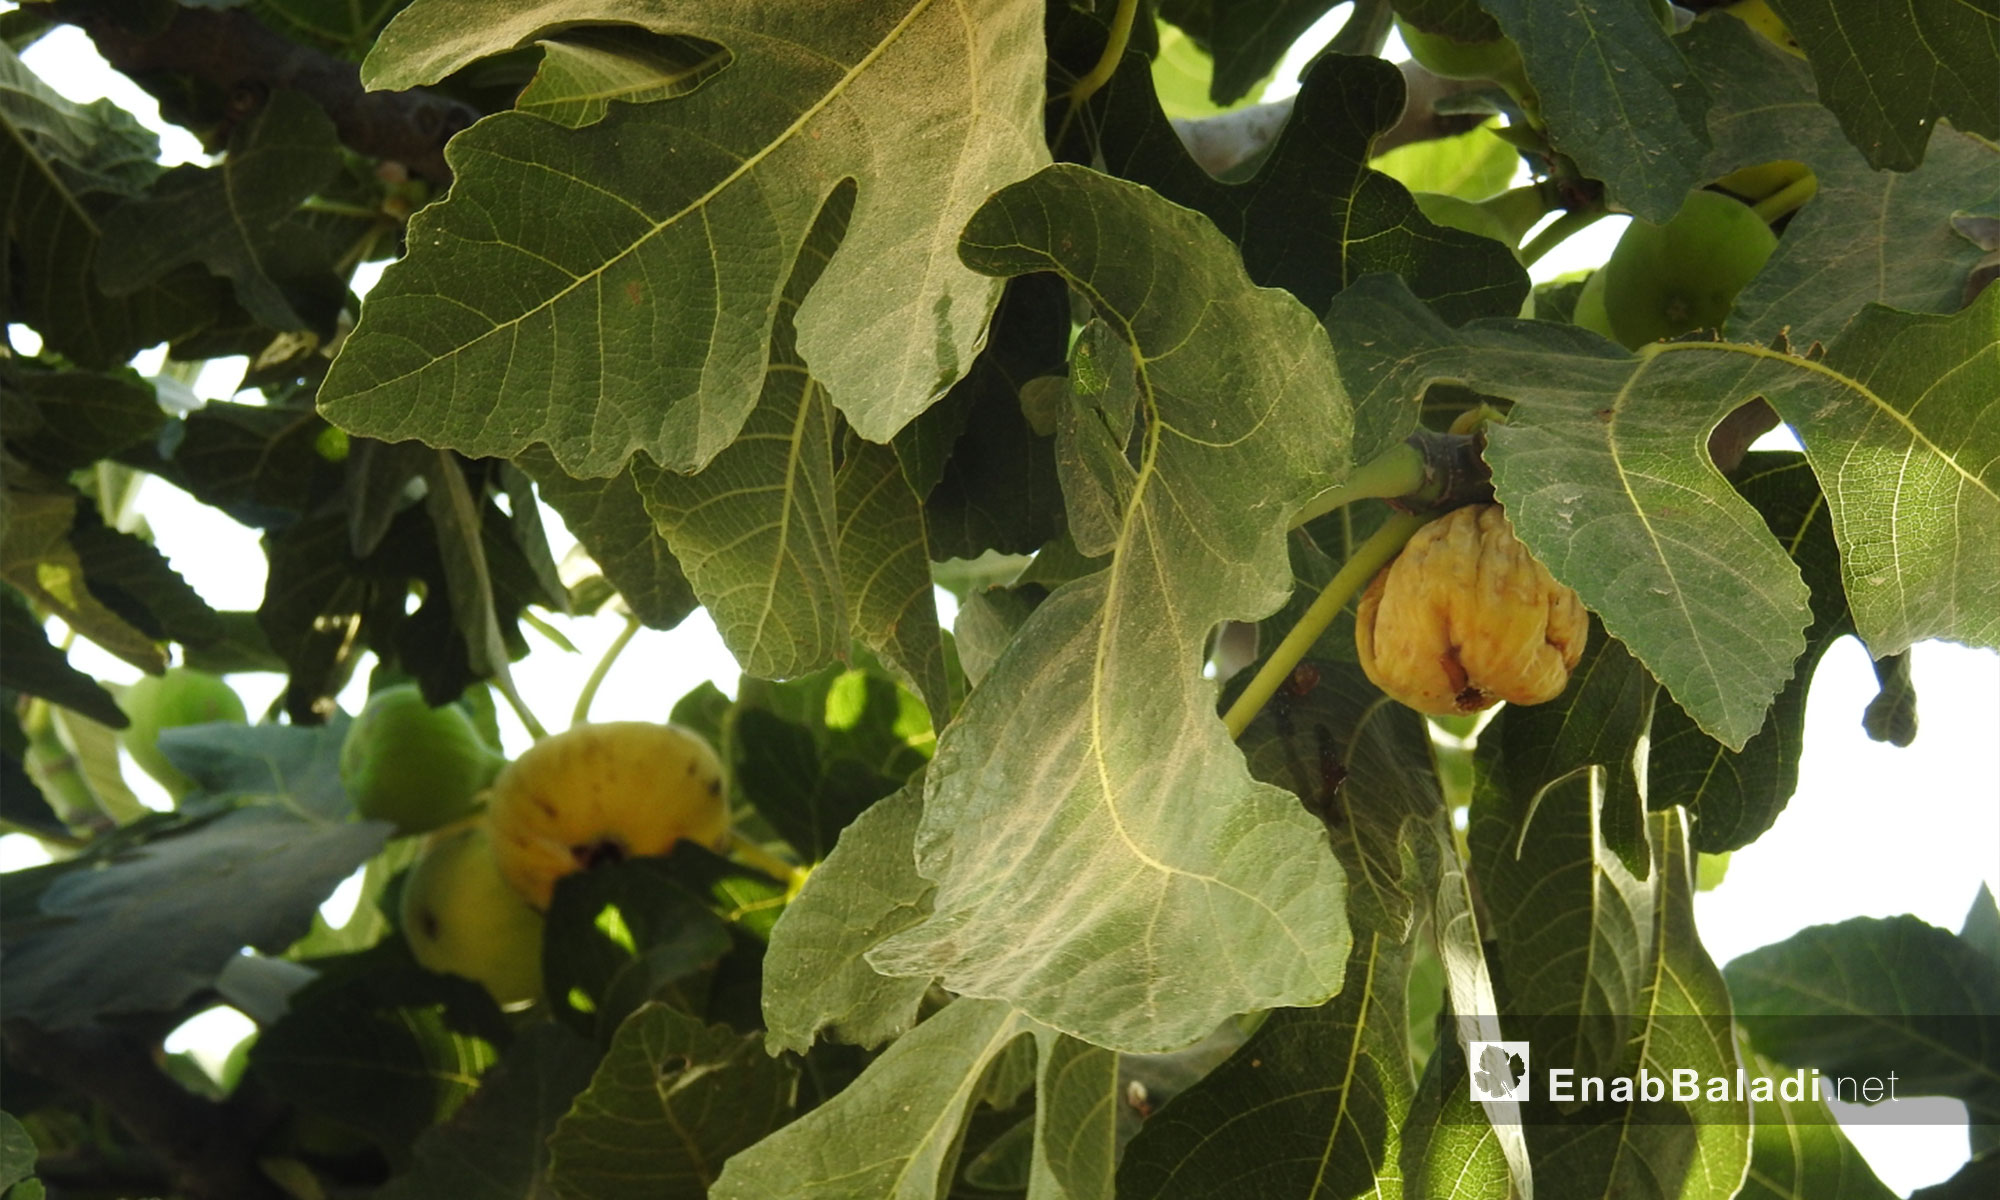 The figs season in the northern countryside of Aleppo – July 24, 2018 (Enab Baladi)